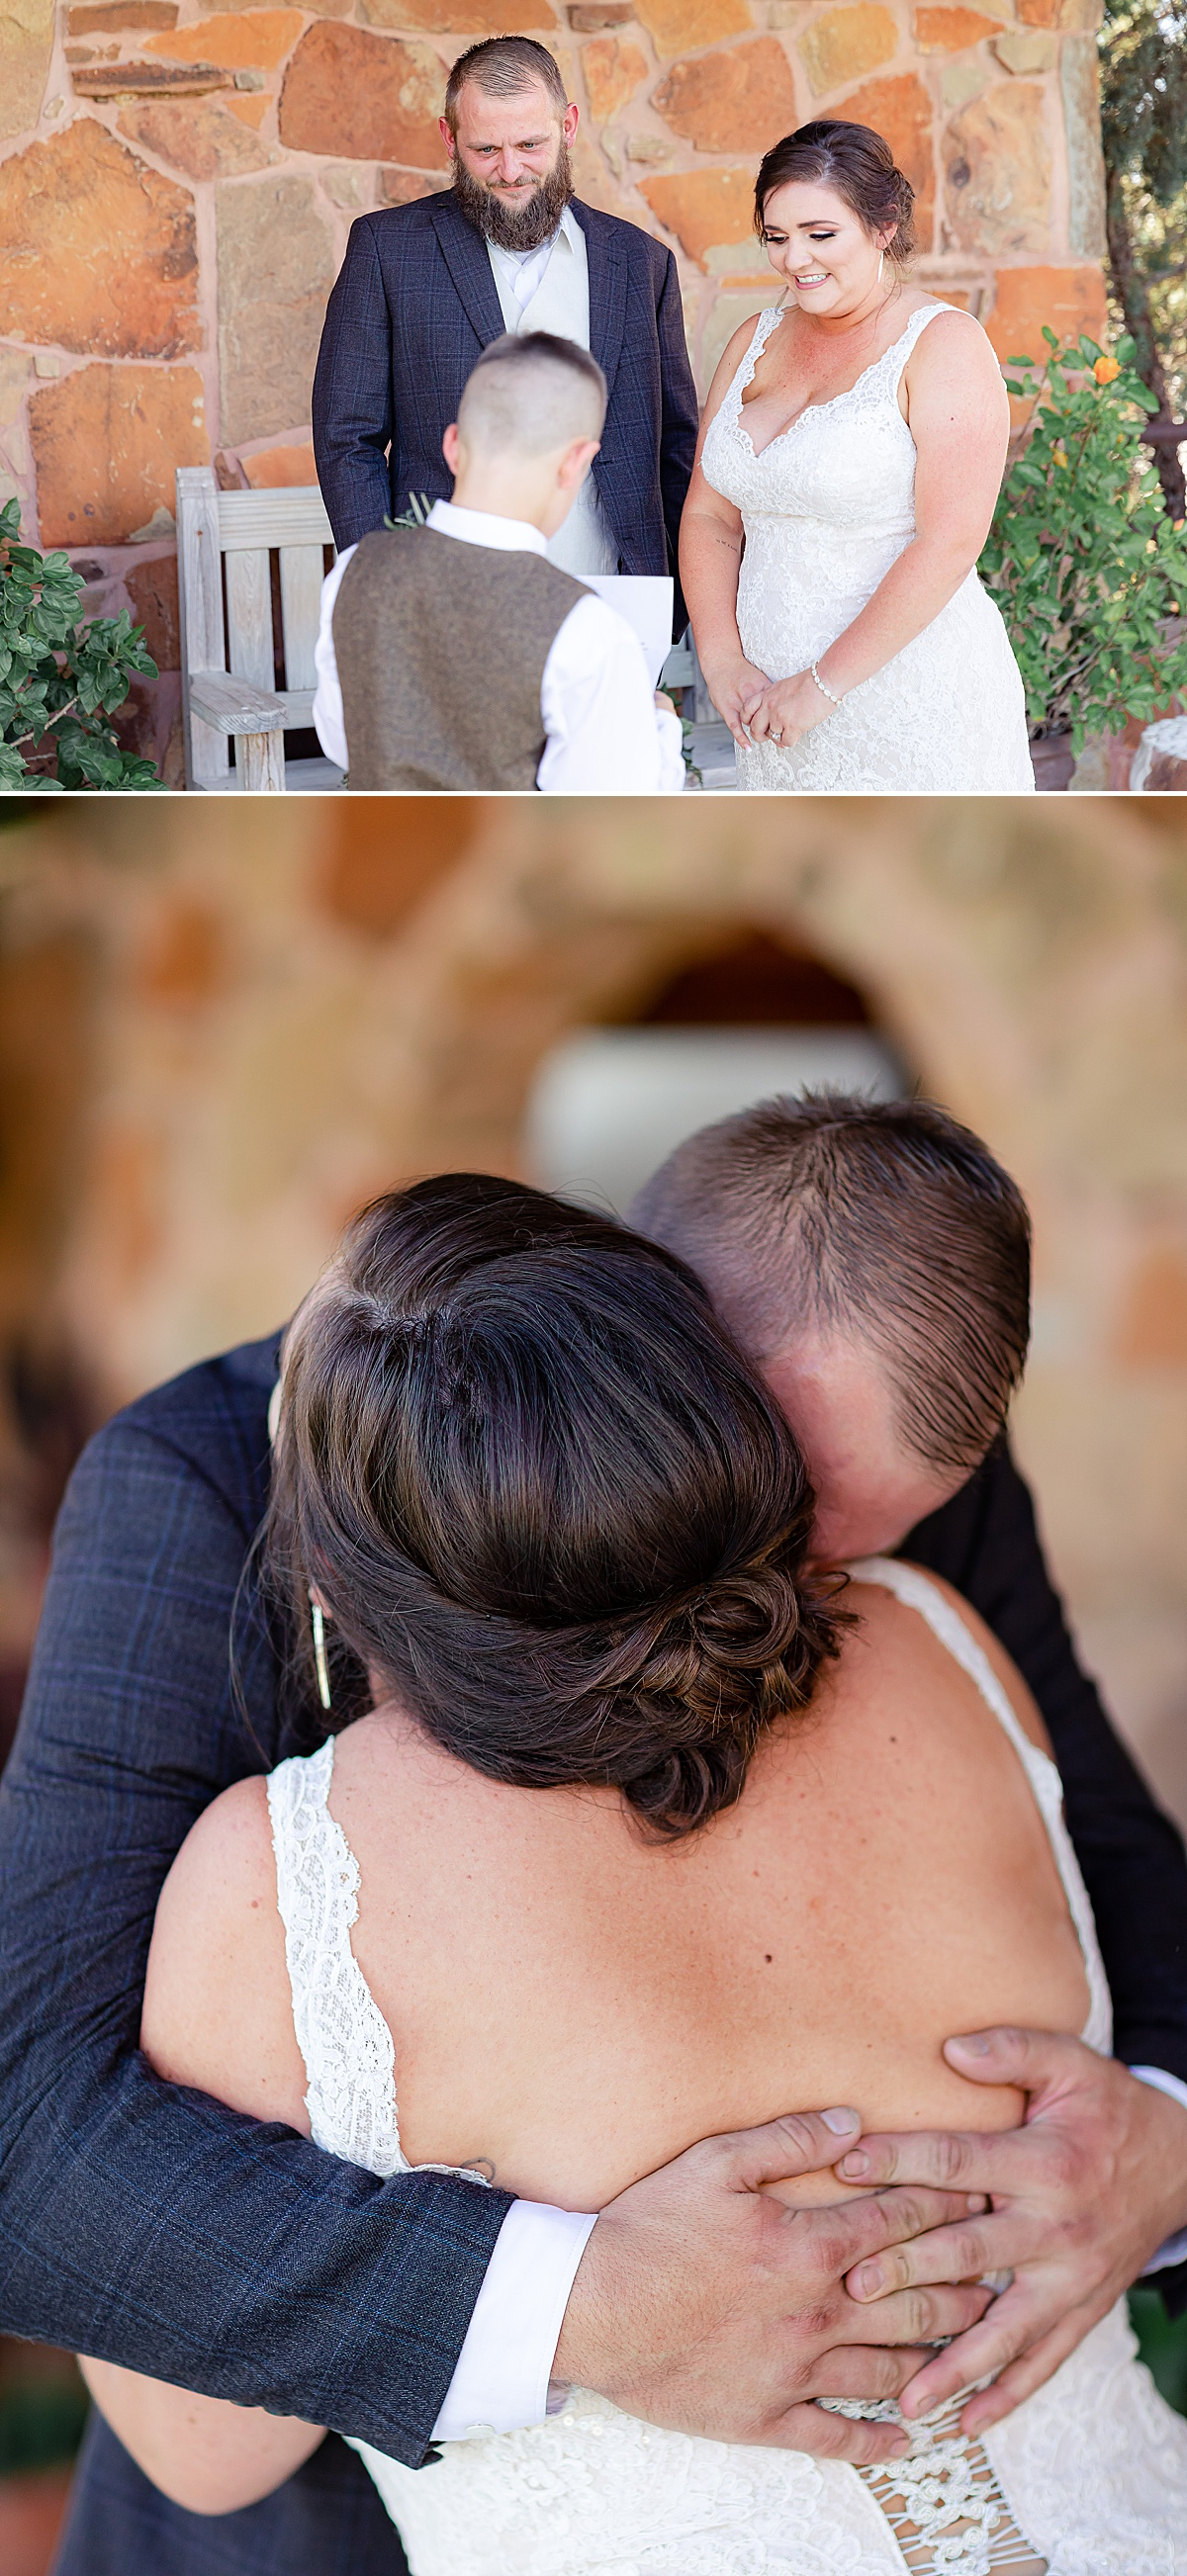 Rustic-Texas-Wedding-Hollow-Creek-Ranch-Carly-Barton-Photography_0169.jpg